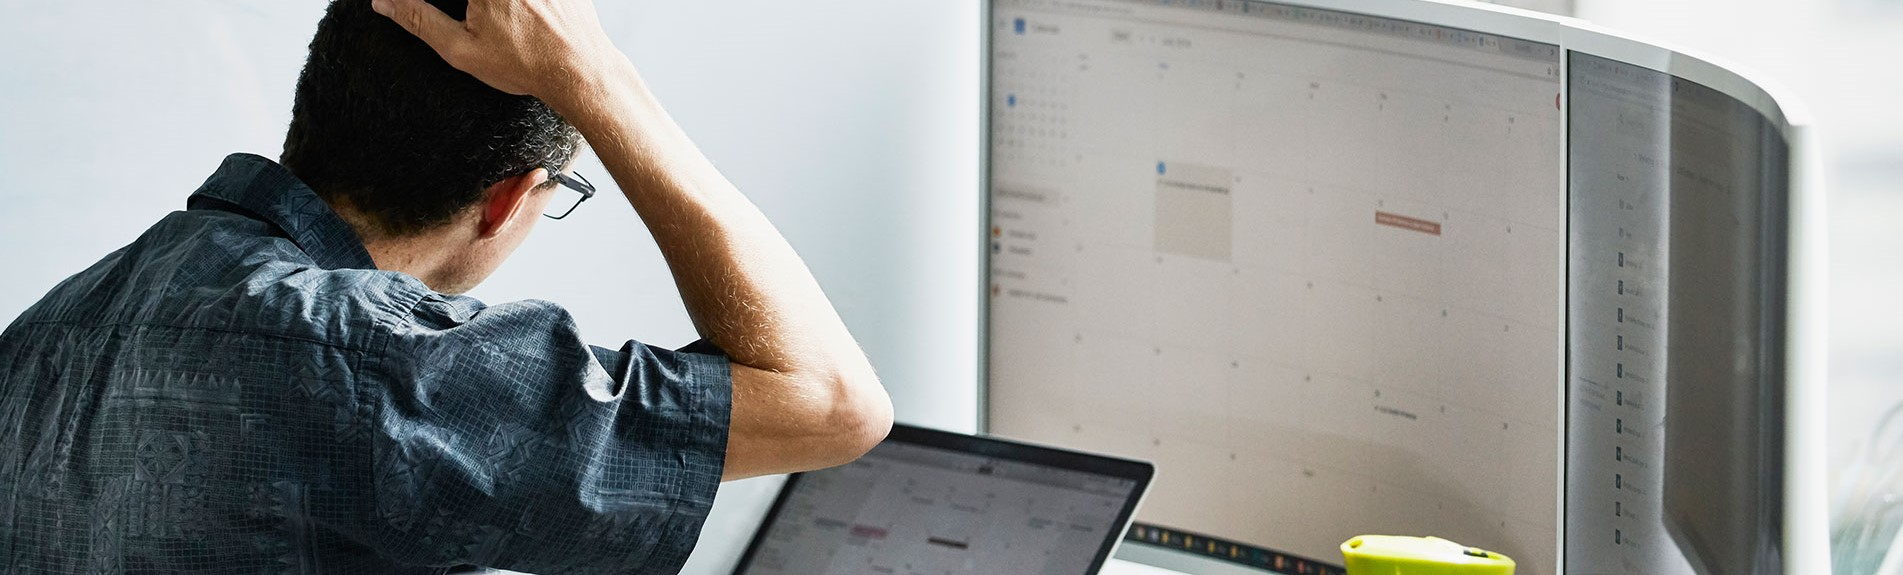 Man Scratching Head While Looking At Calendar On Computer Monitor